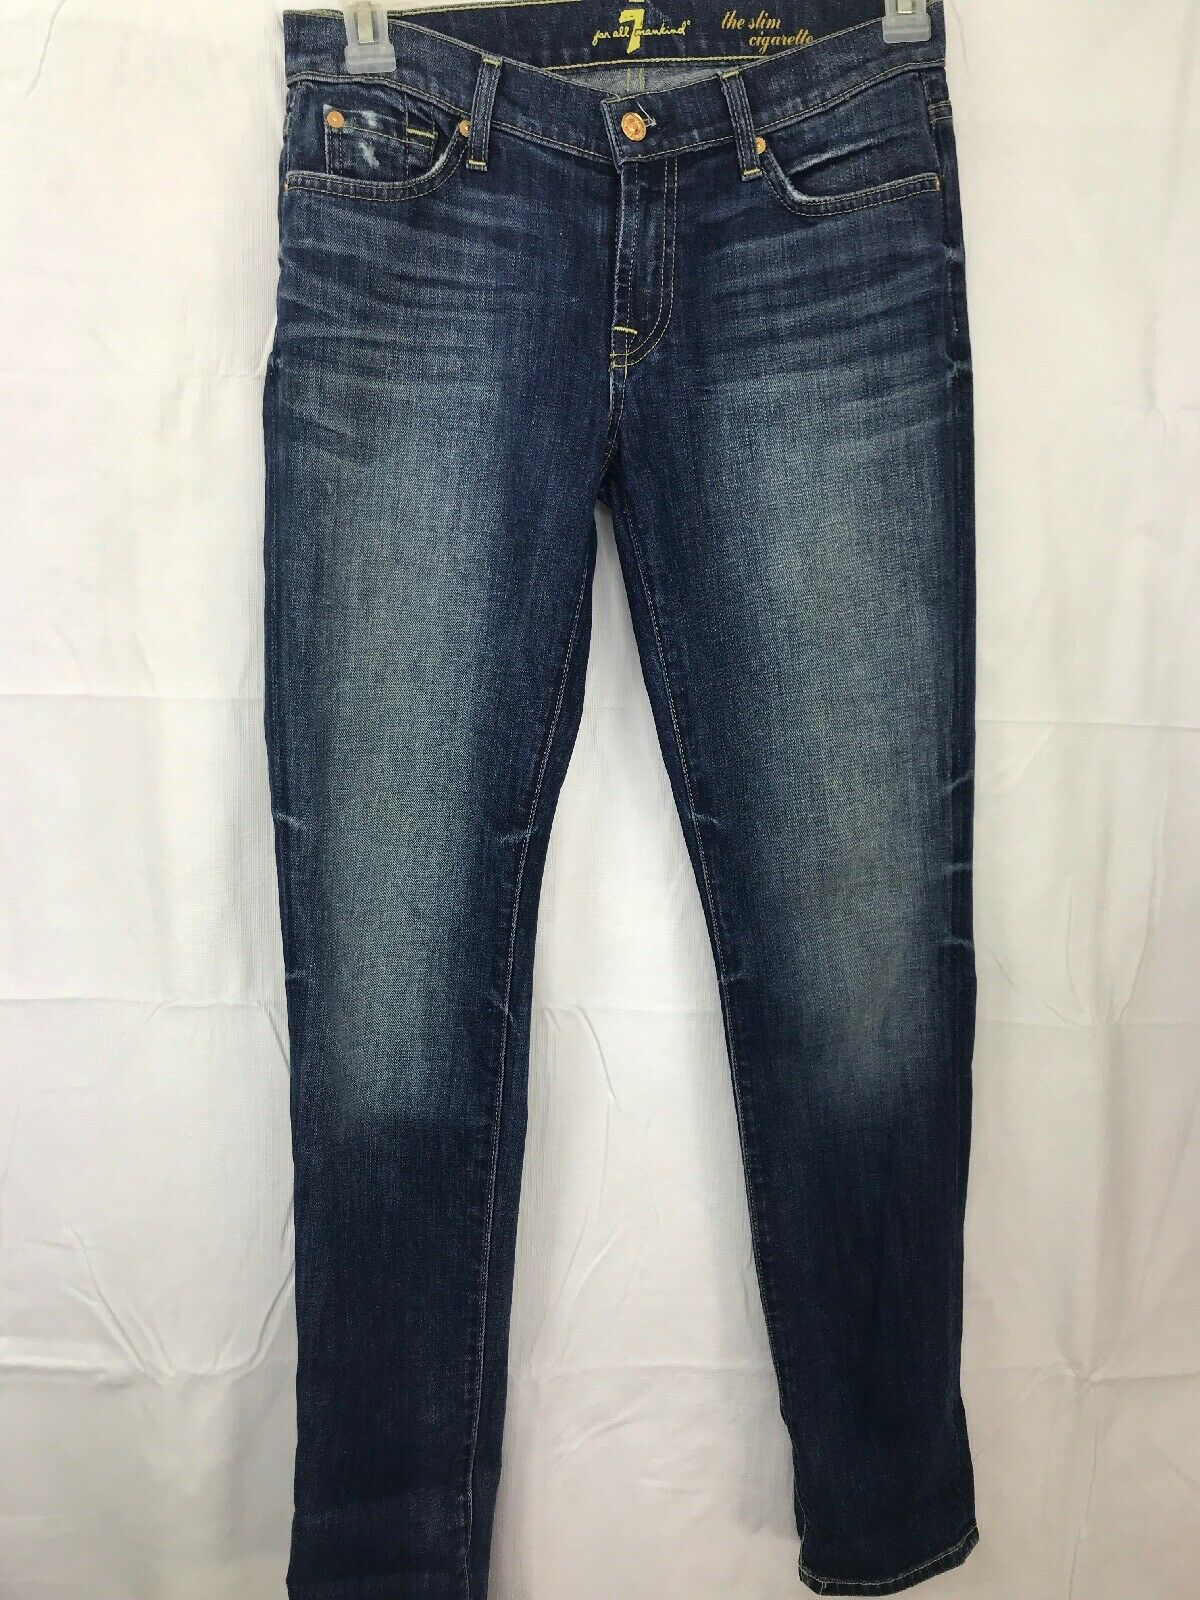 7 FOR ALL MANKIND Womens Sz 27  The Slim Cigarette Distressed Skinny Denim Jeans